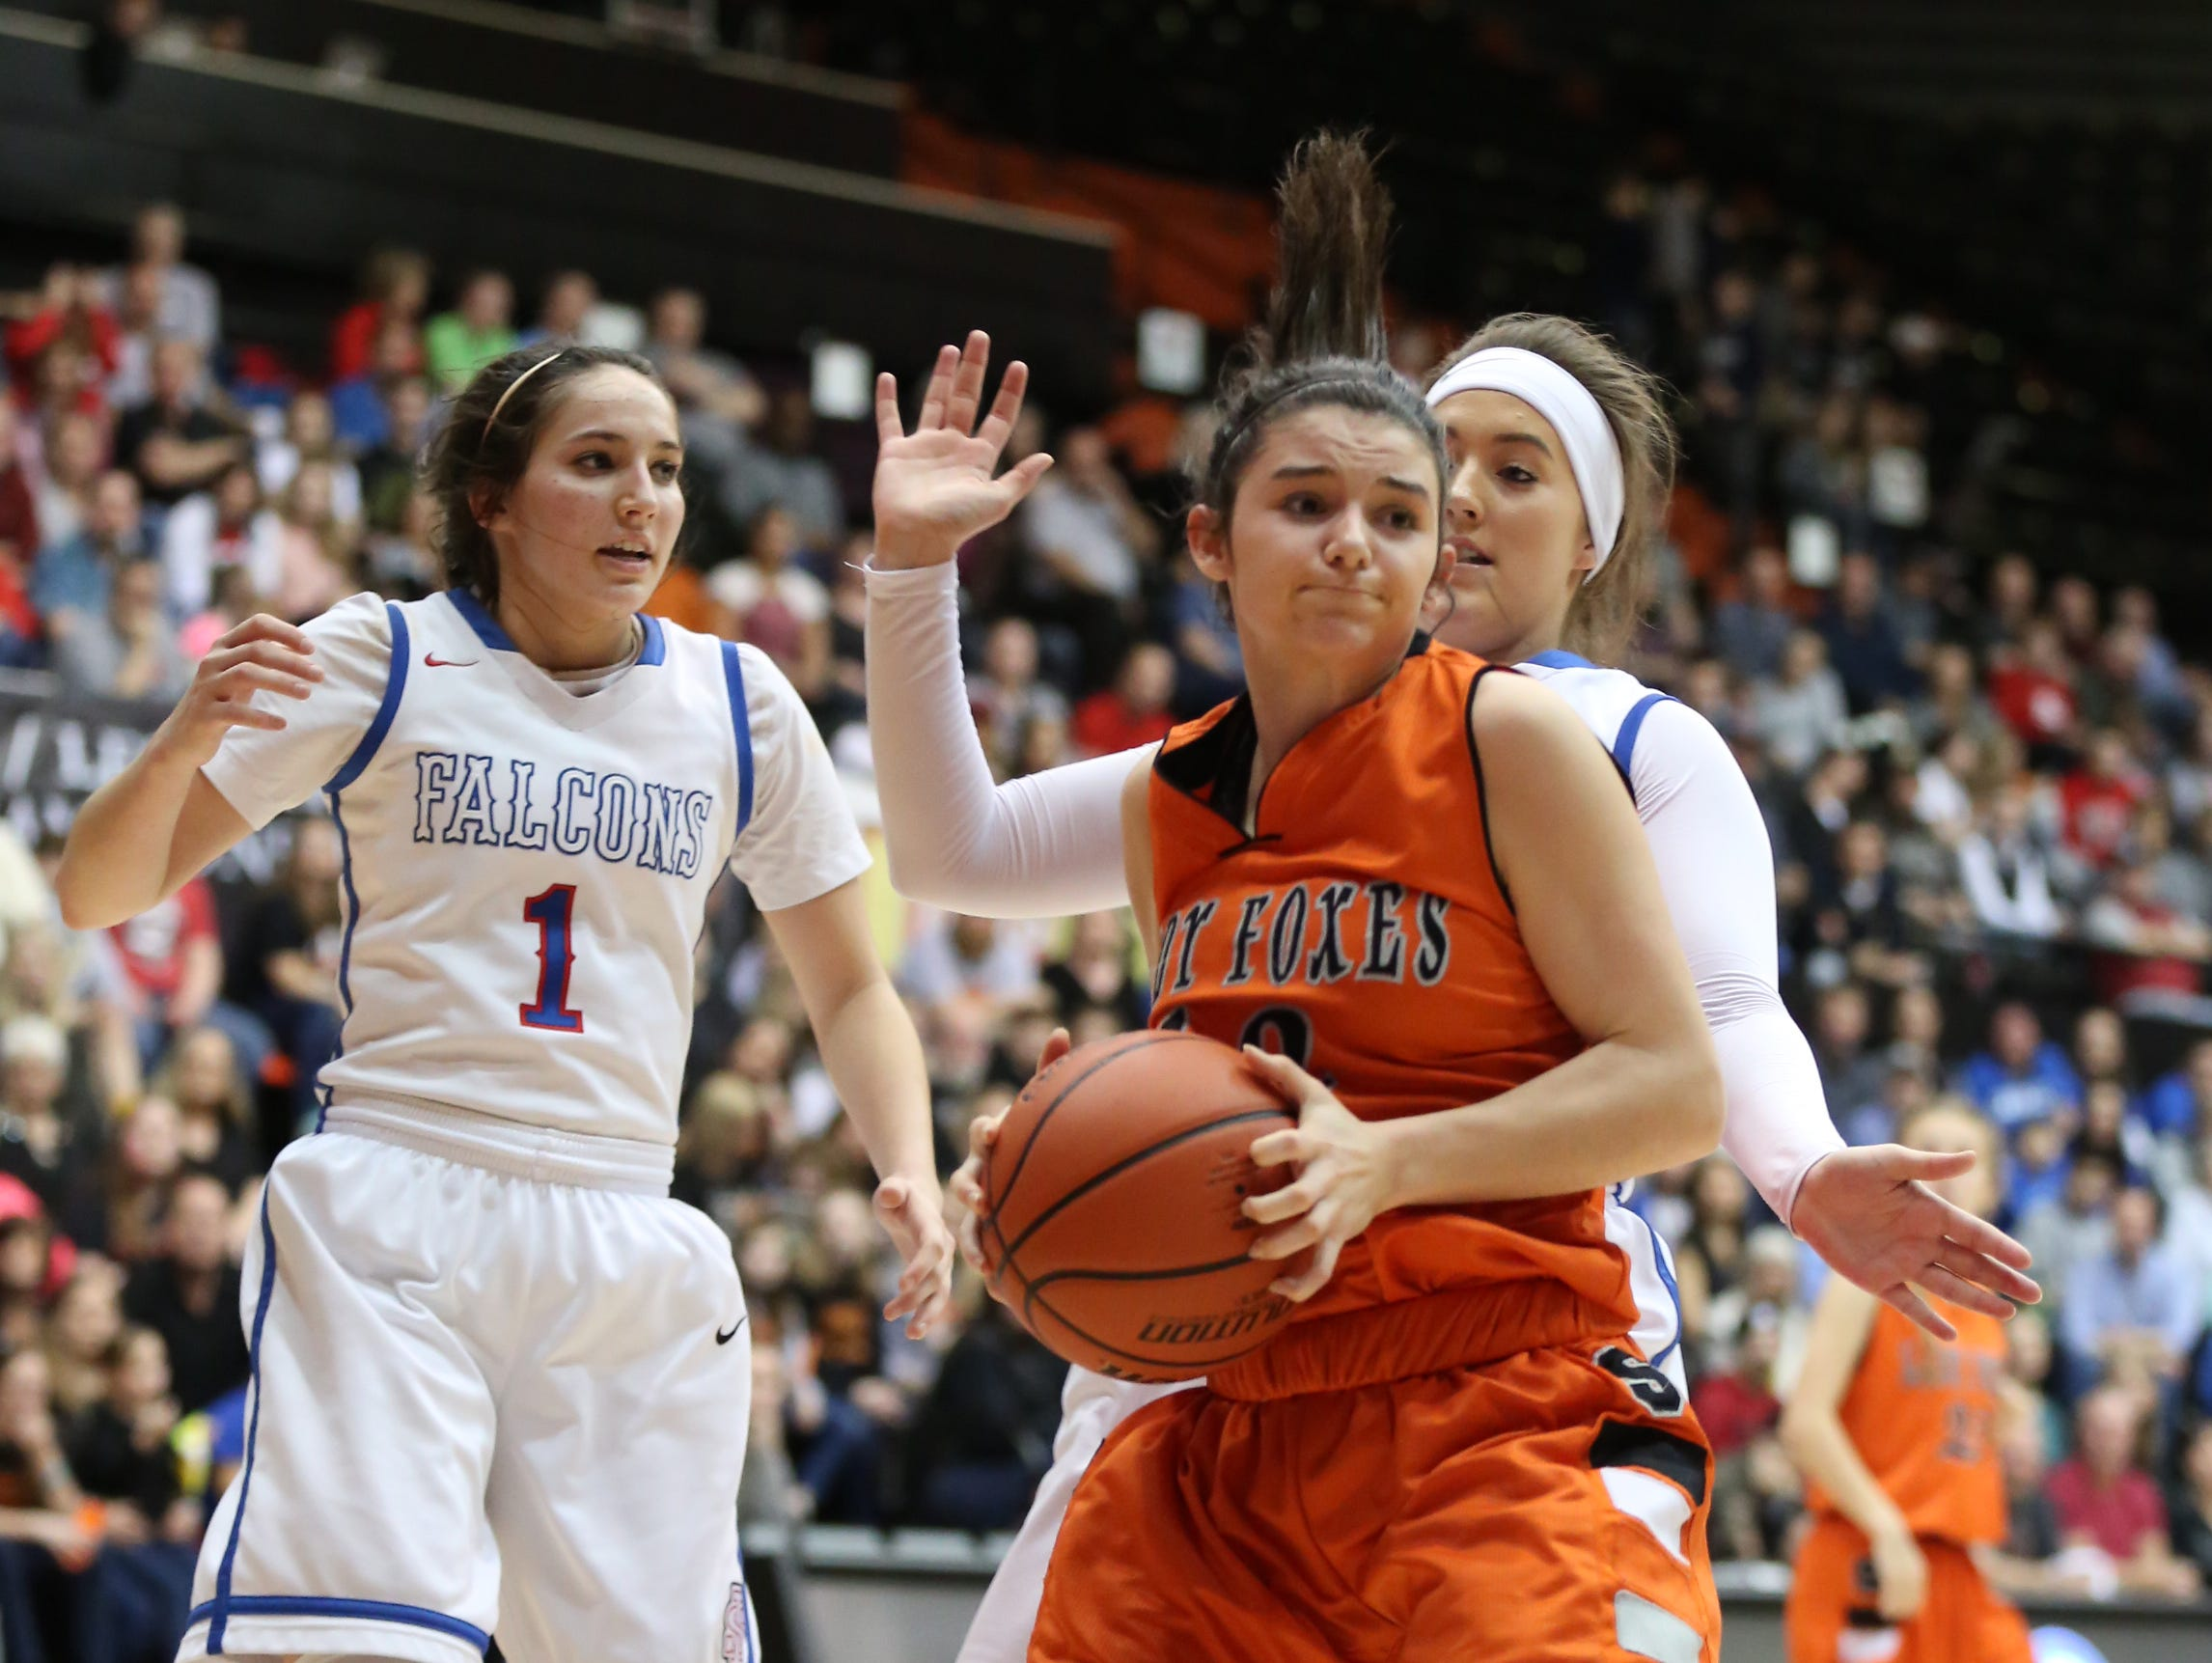 Silverton's Brooke McCarty and the Foxes fall to La Salle 42-28 in the OSAA Class 5A state championship on Friday, March 10, 2017, at Gill Coliseum in Corvallis.